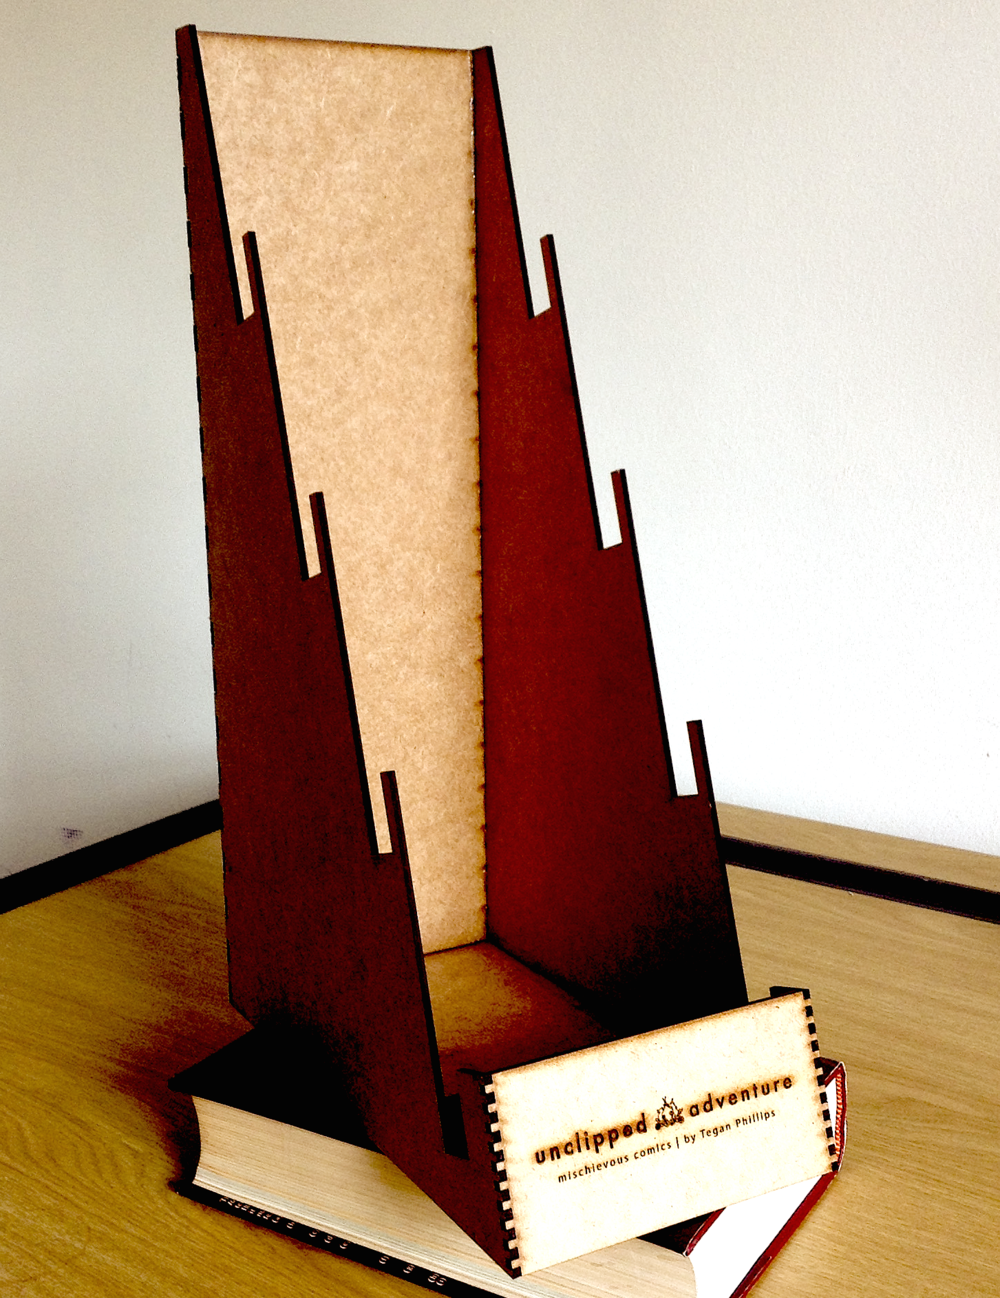 Card Display Stand - Complimentary display stand for stockists30cm deep, 13cm wide, 45cm high